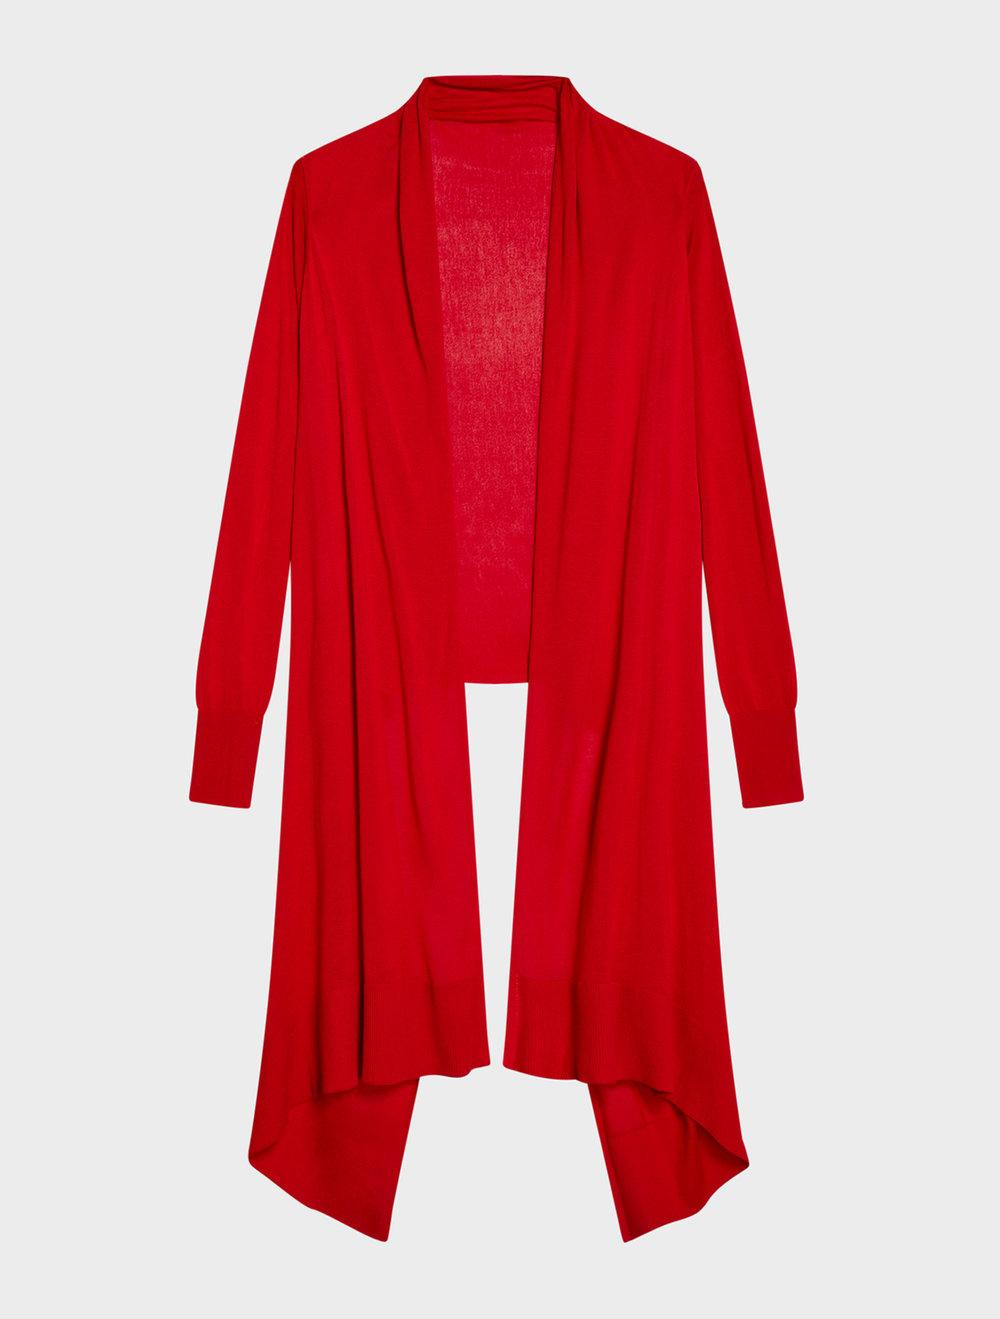 Dkny Open-Front High-Low Cozy Cardigan In Red